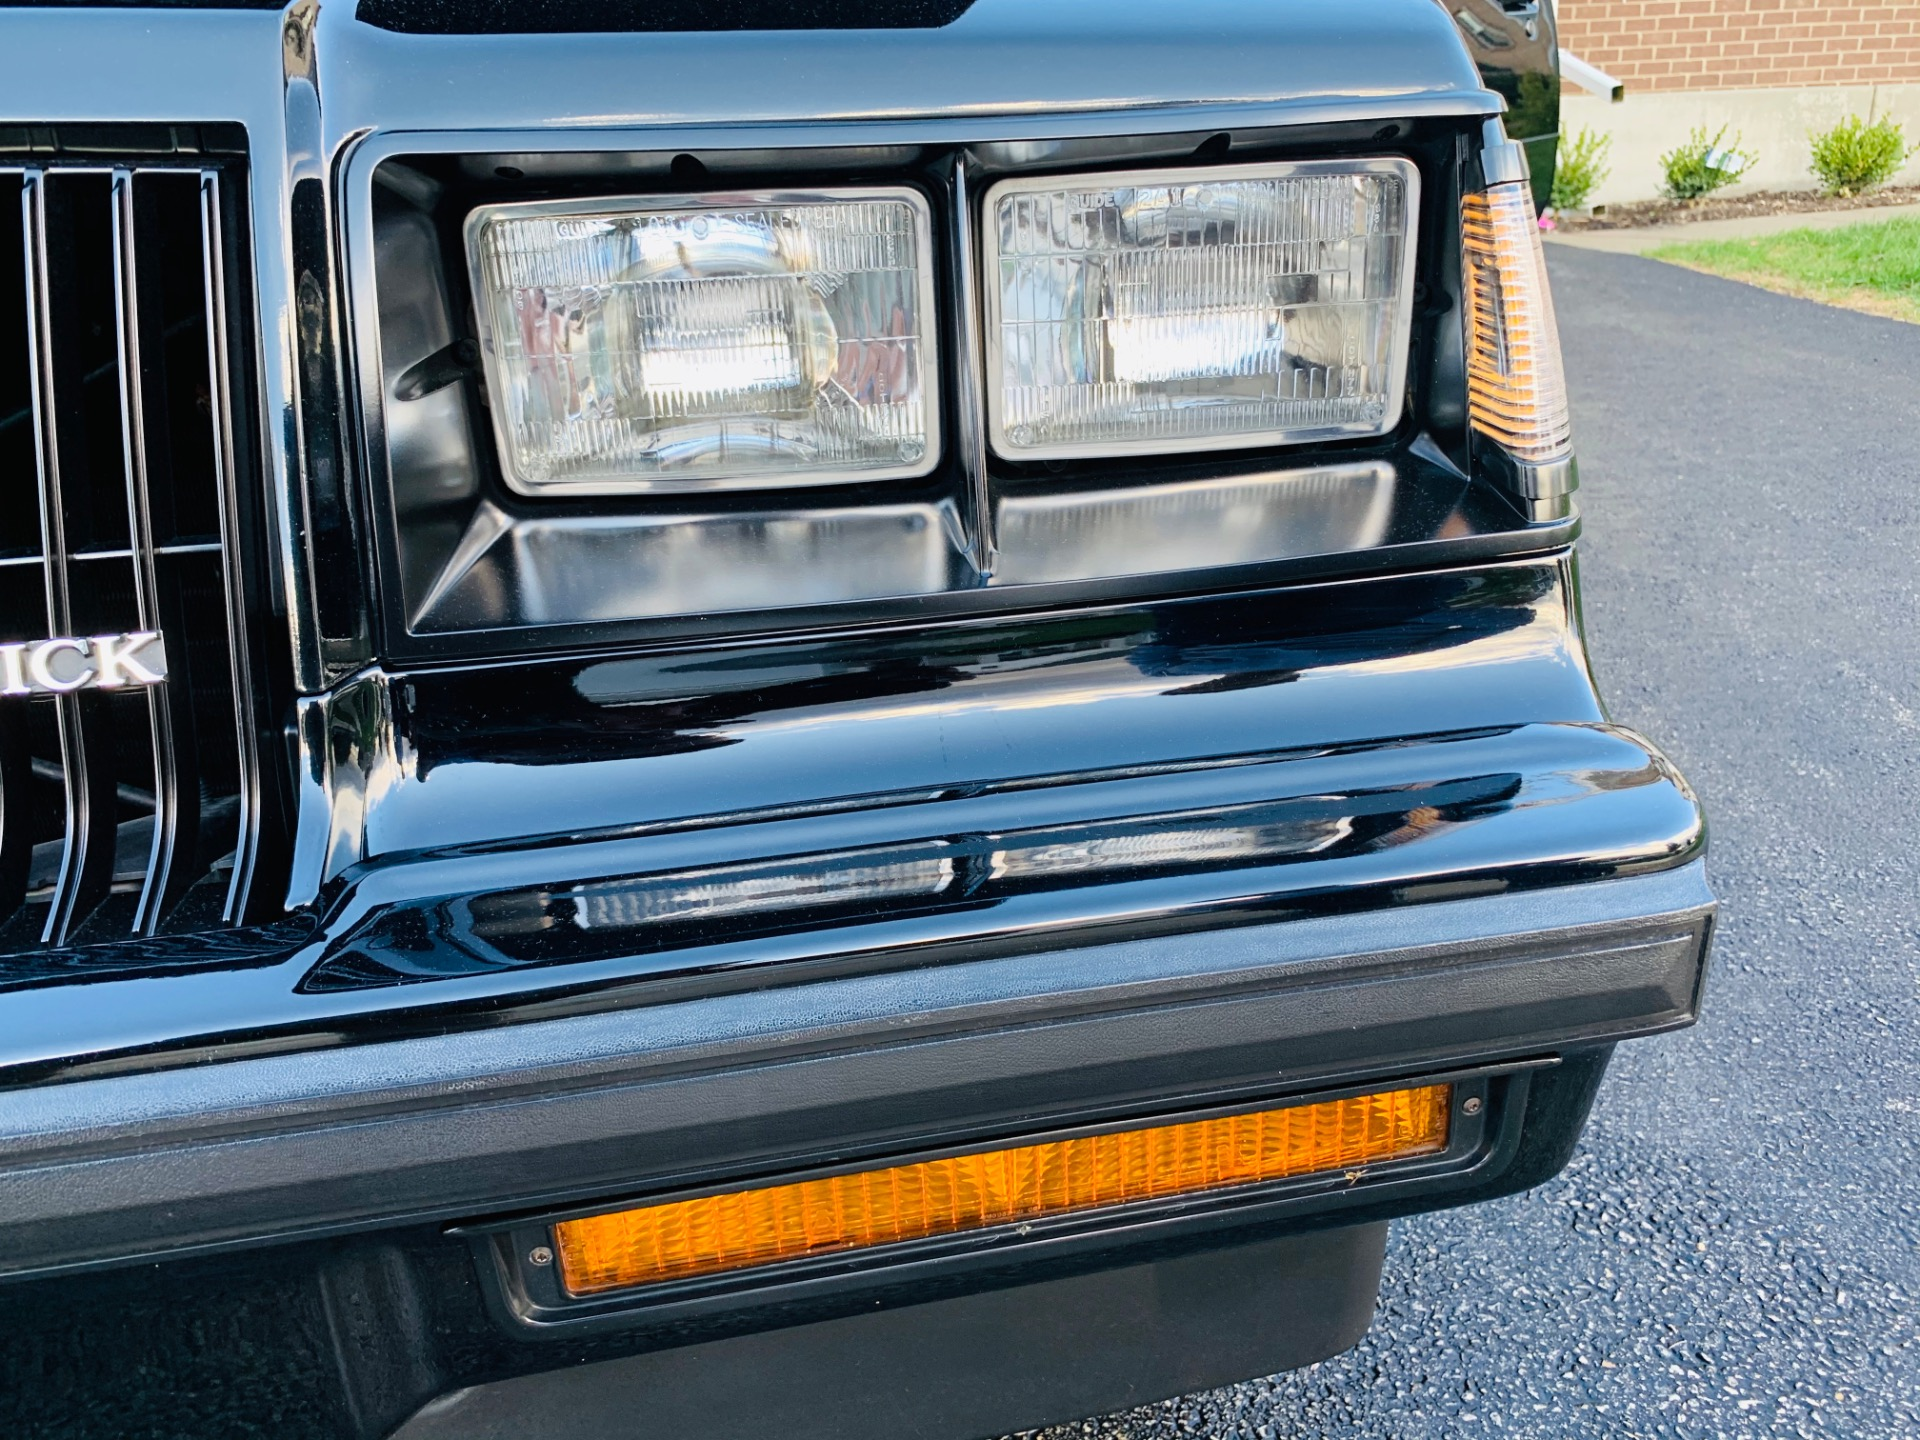 Used 1987 Buick Grand National - LOW MILES - VERY SOLID - ONE OWNER - SEE VIDEO | Mundelein, IL